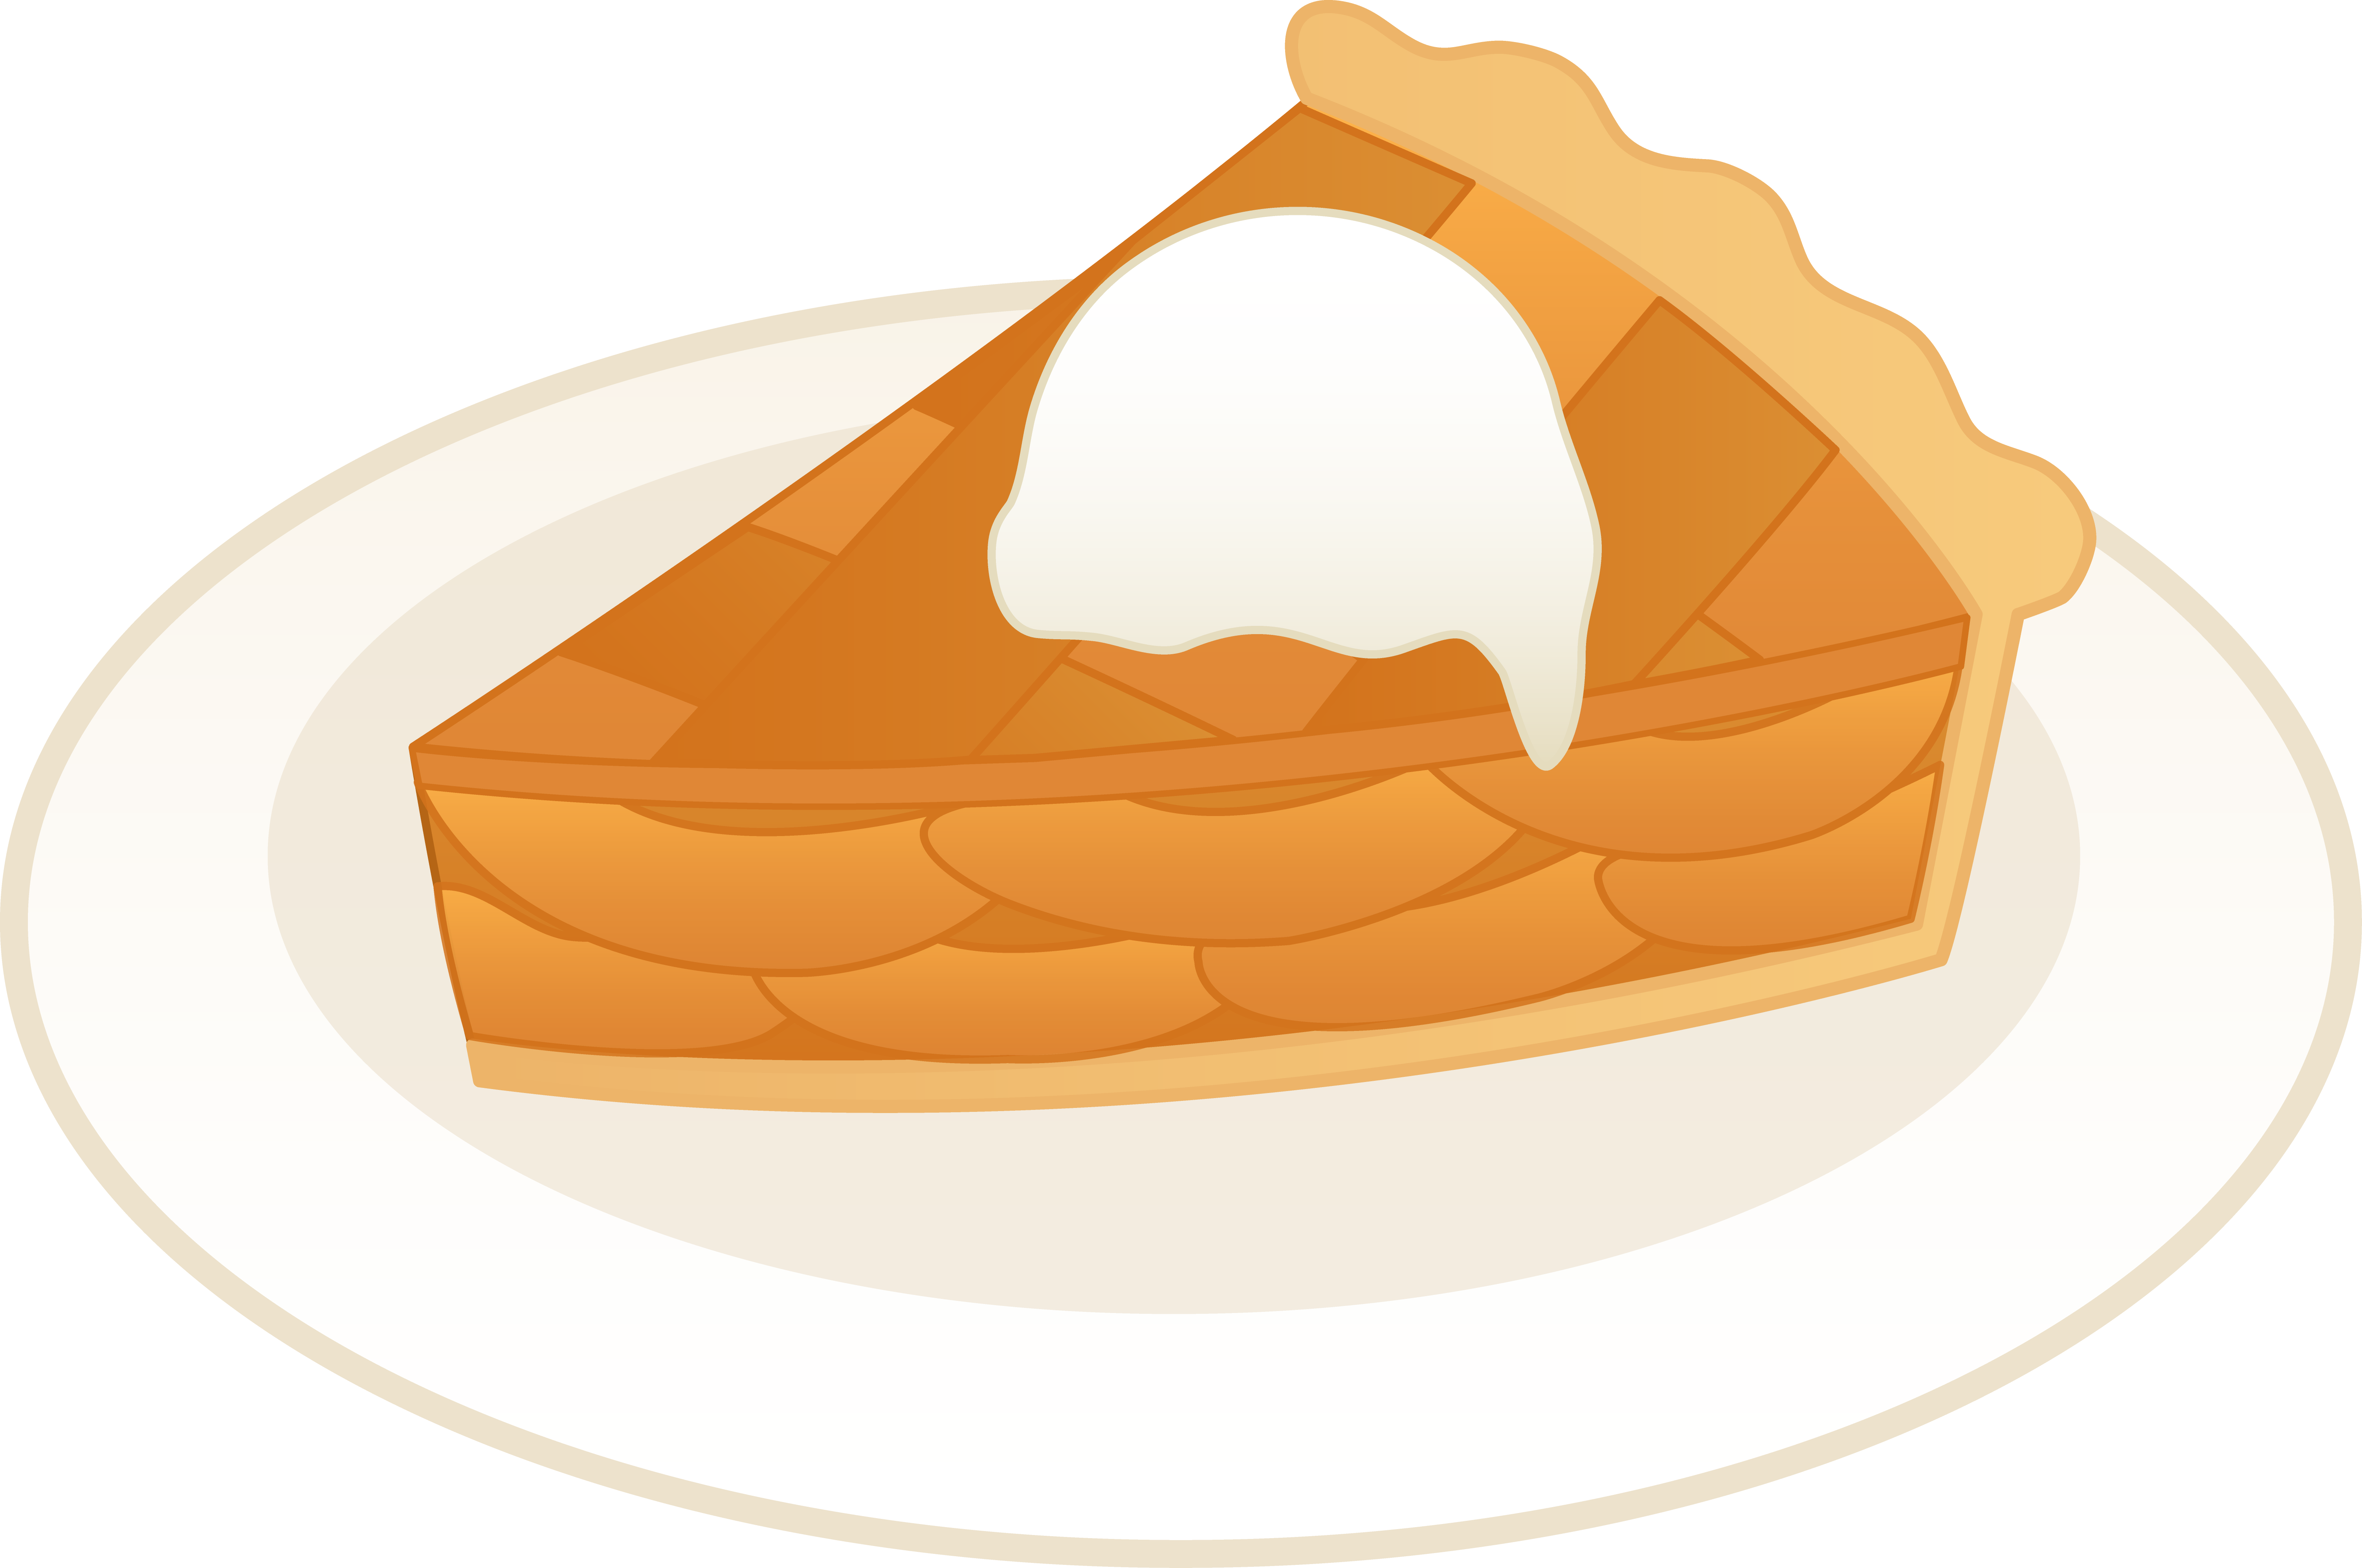 Pie clipart draw. Apple a la mode